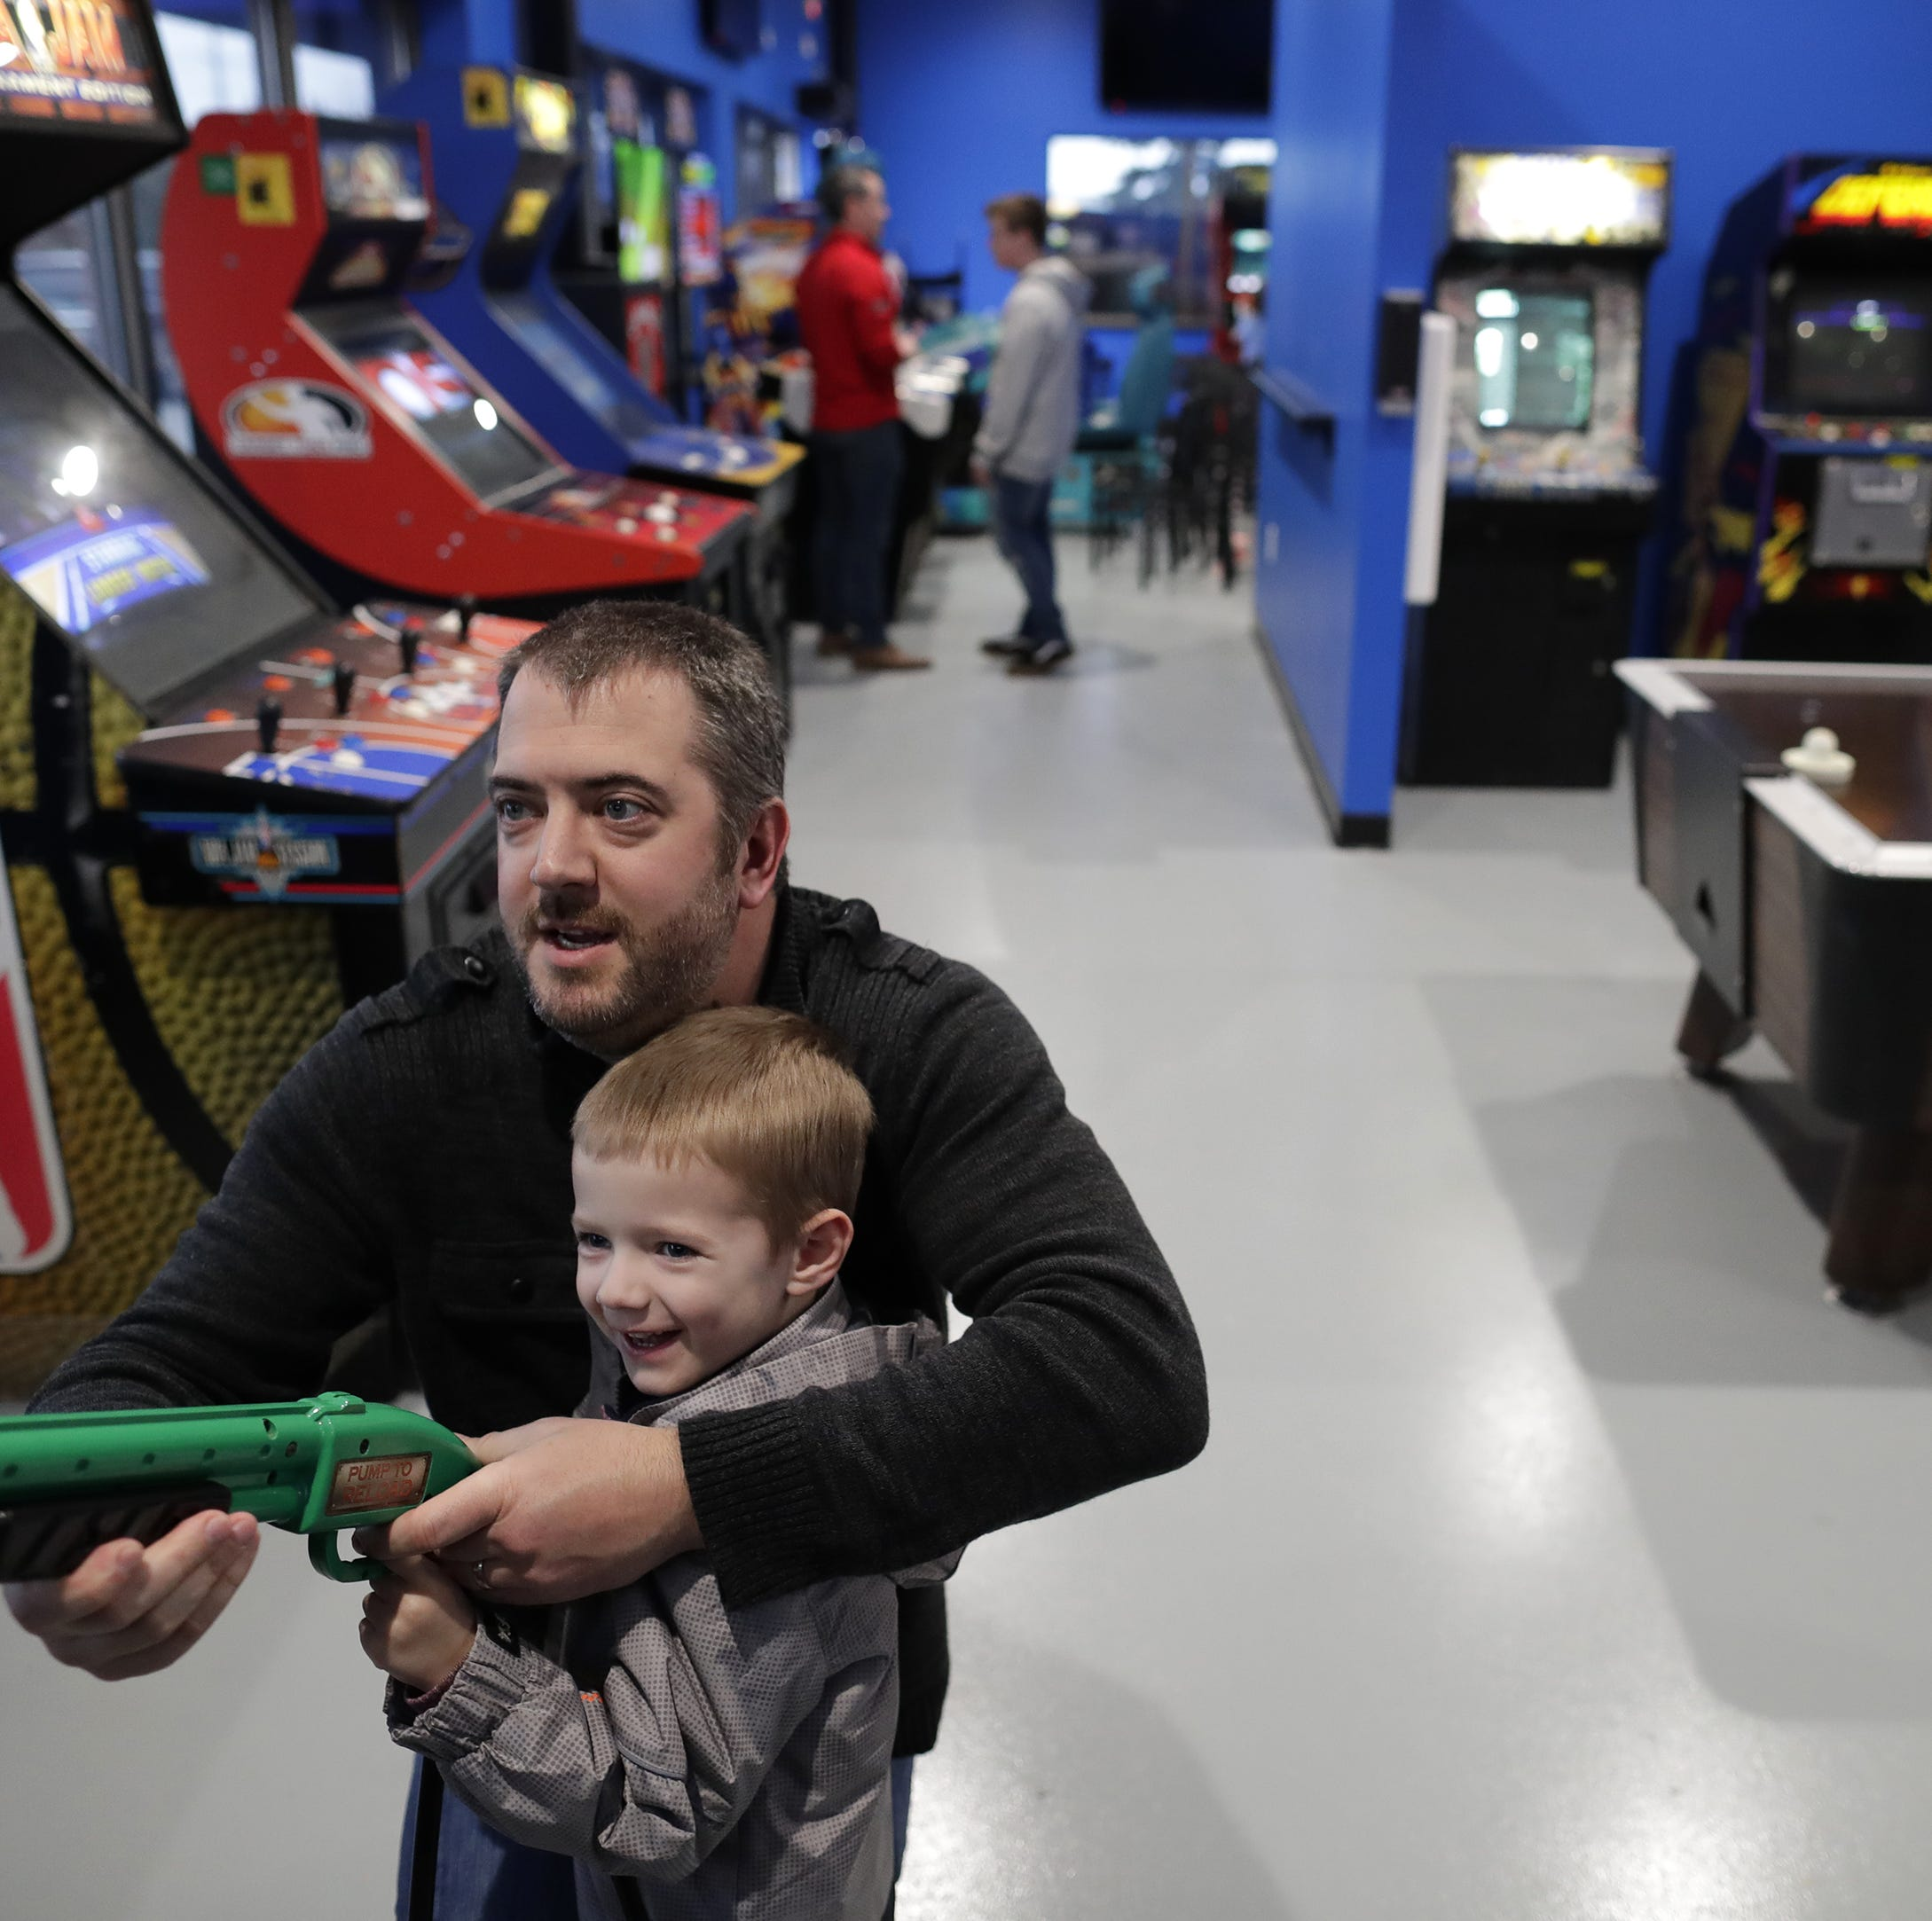 Pinball and pool: Pixels Arcade & Sports Bar opens in Oshkosh | Streetwise